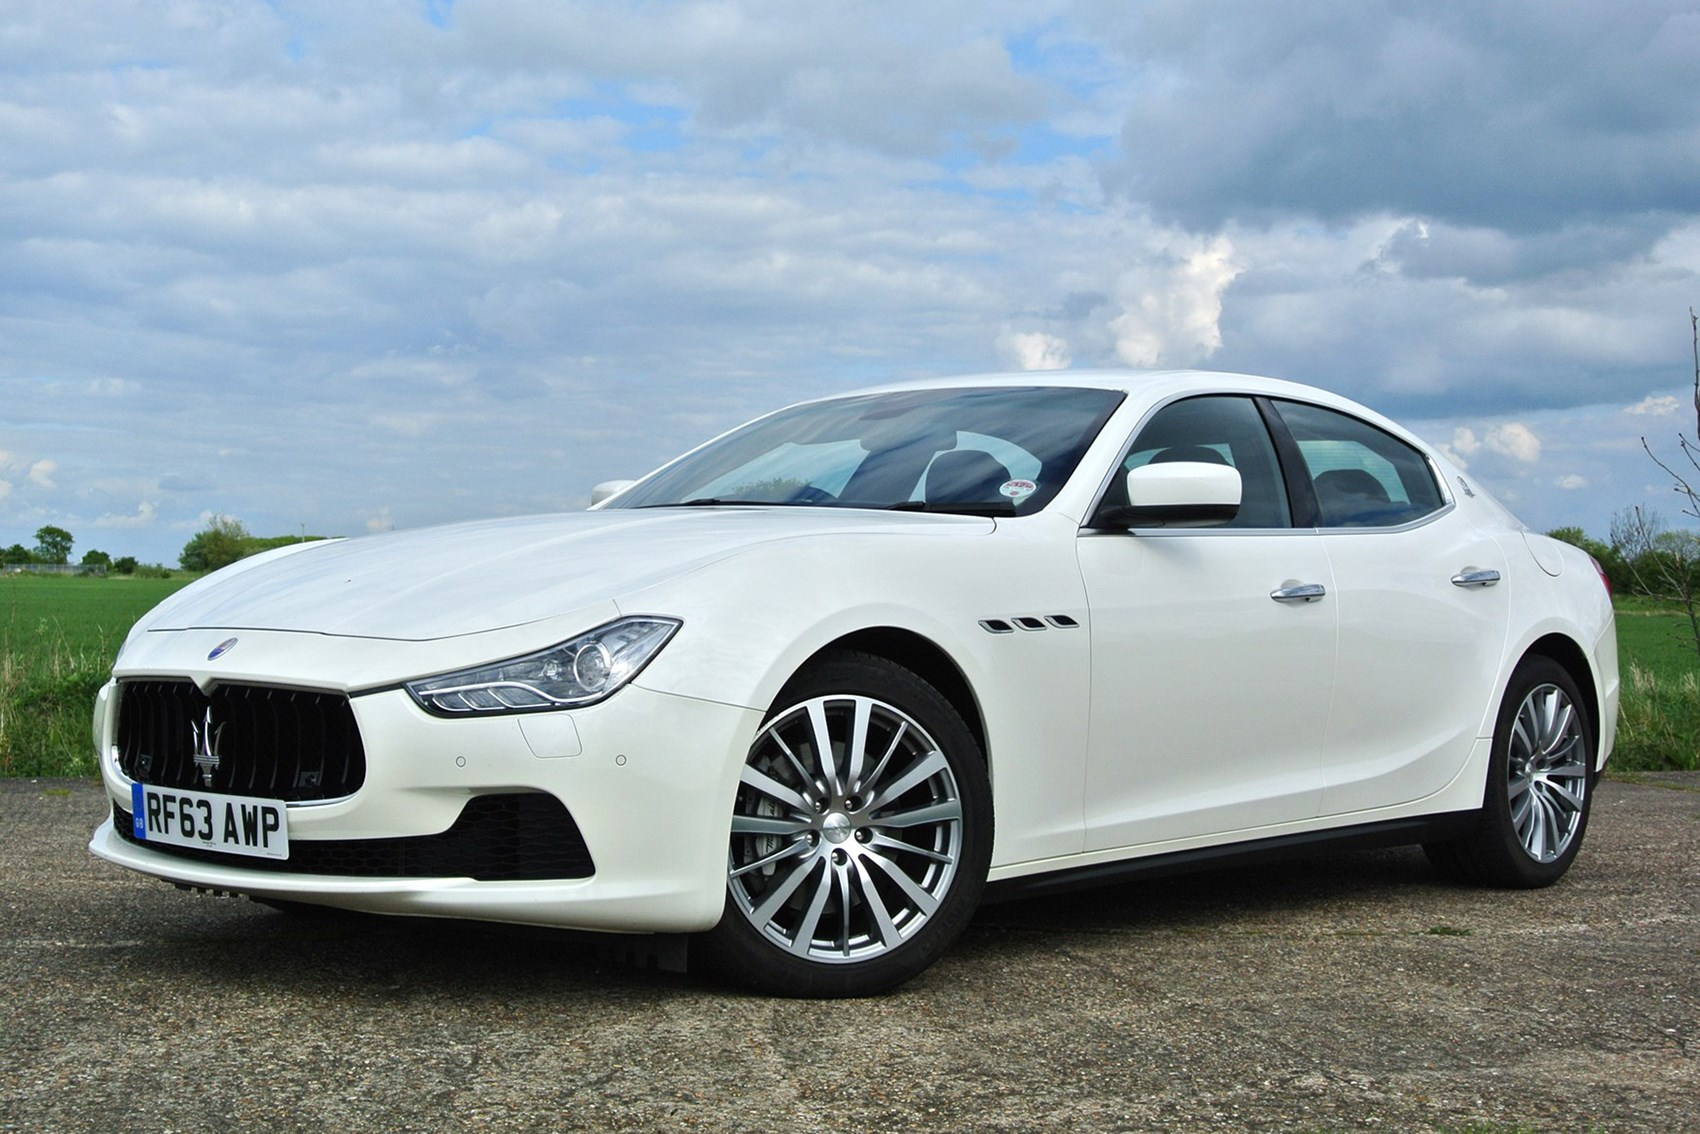 Marvelous Maserati Ghibli   Best Fast Family Saloon Cars